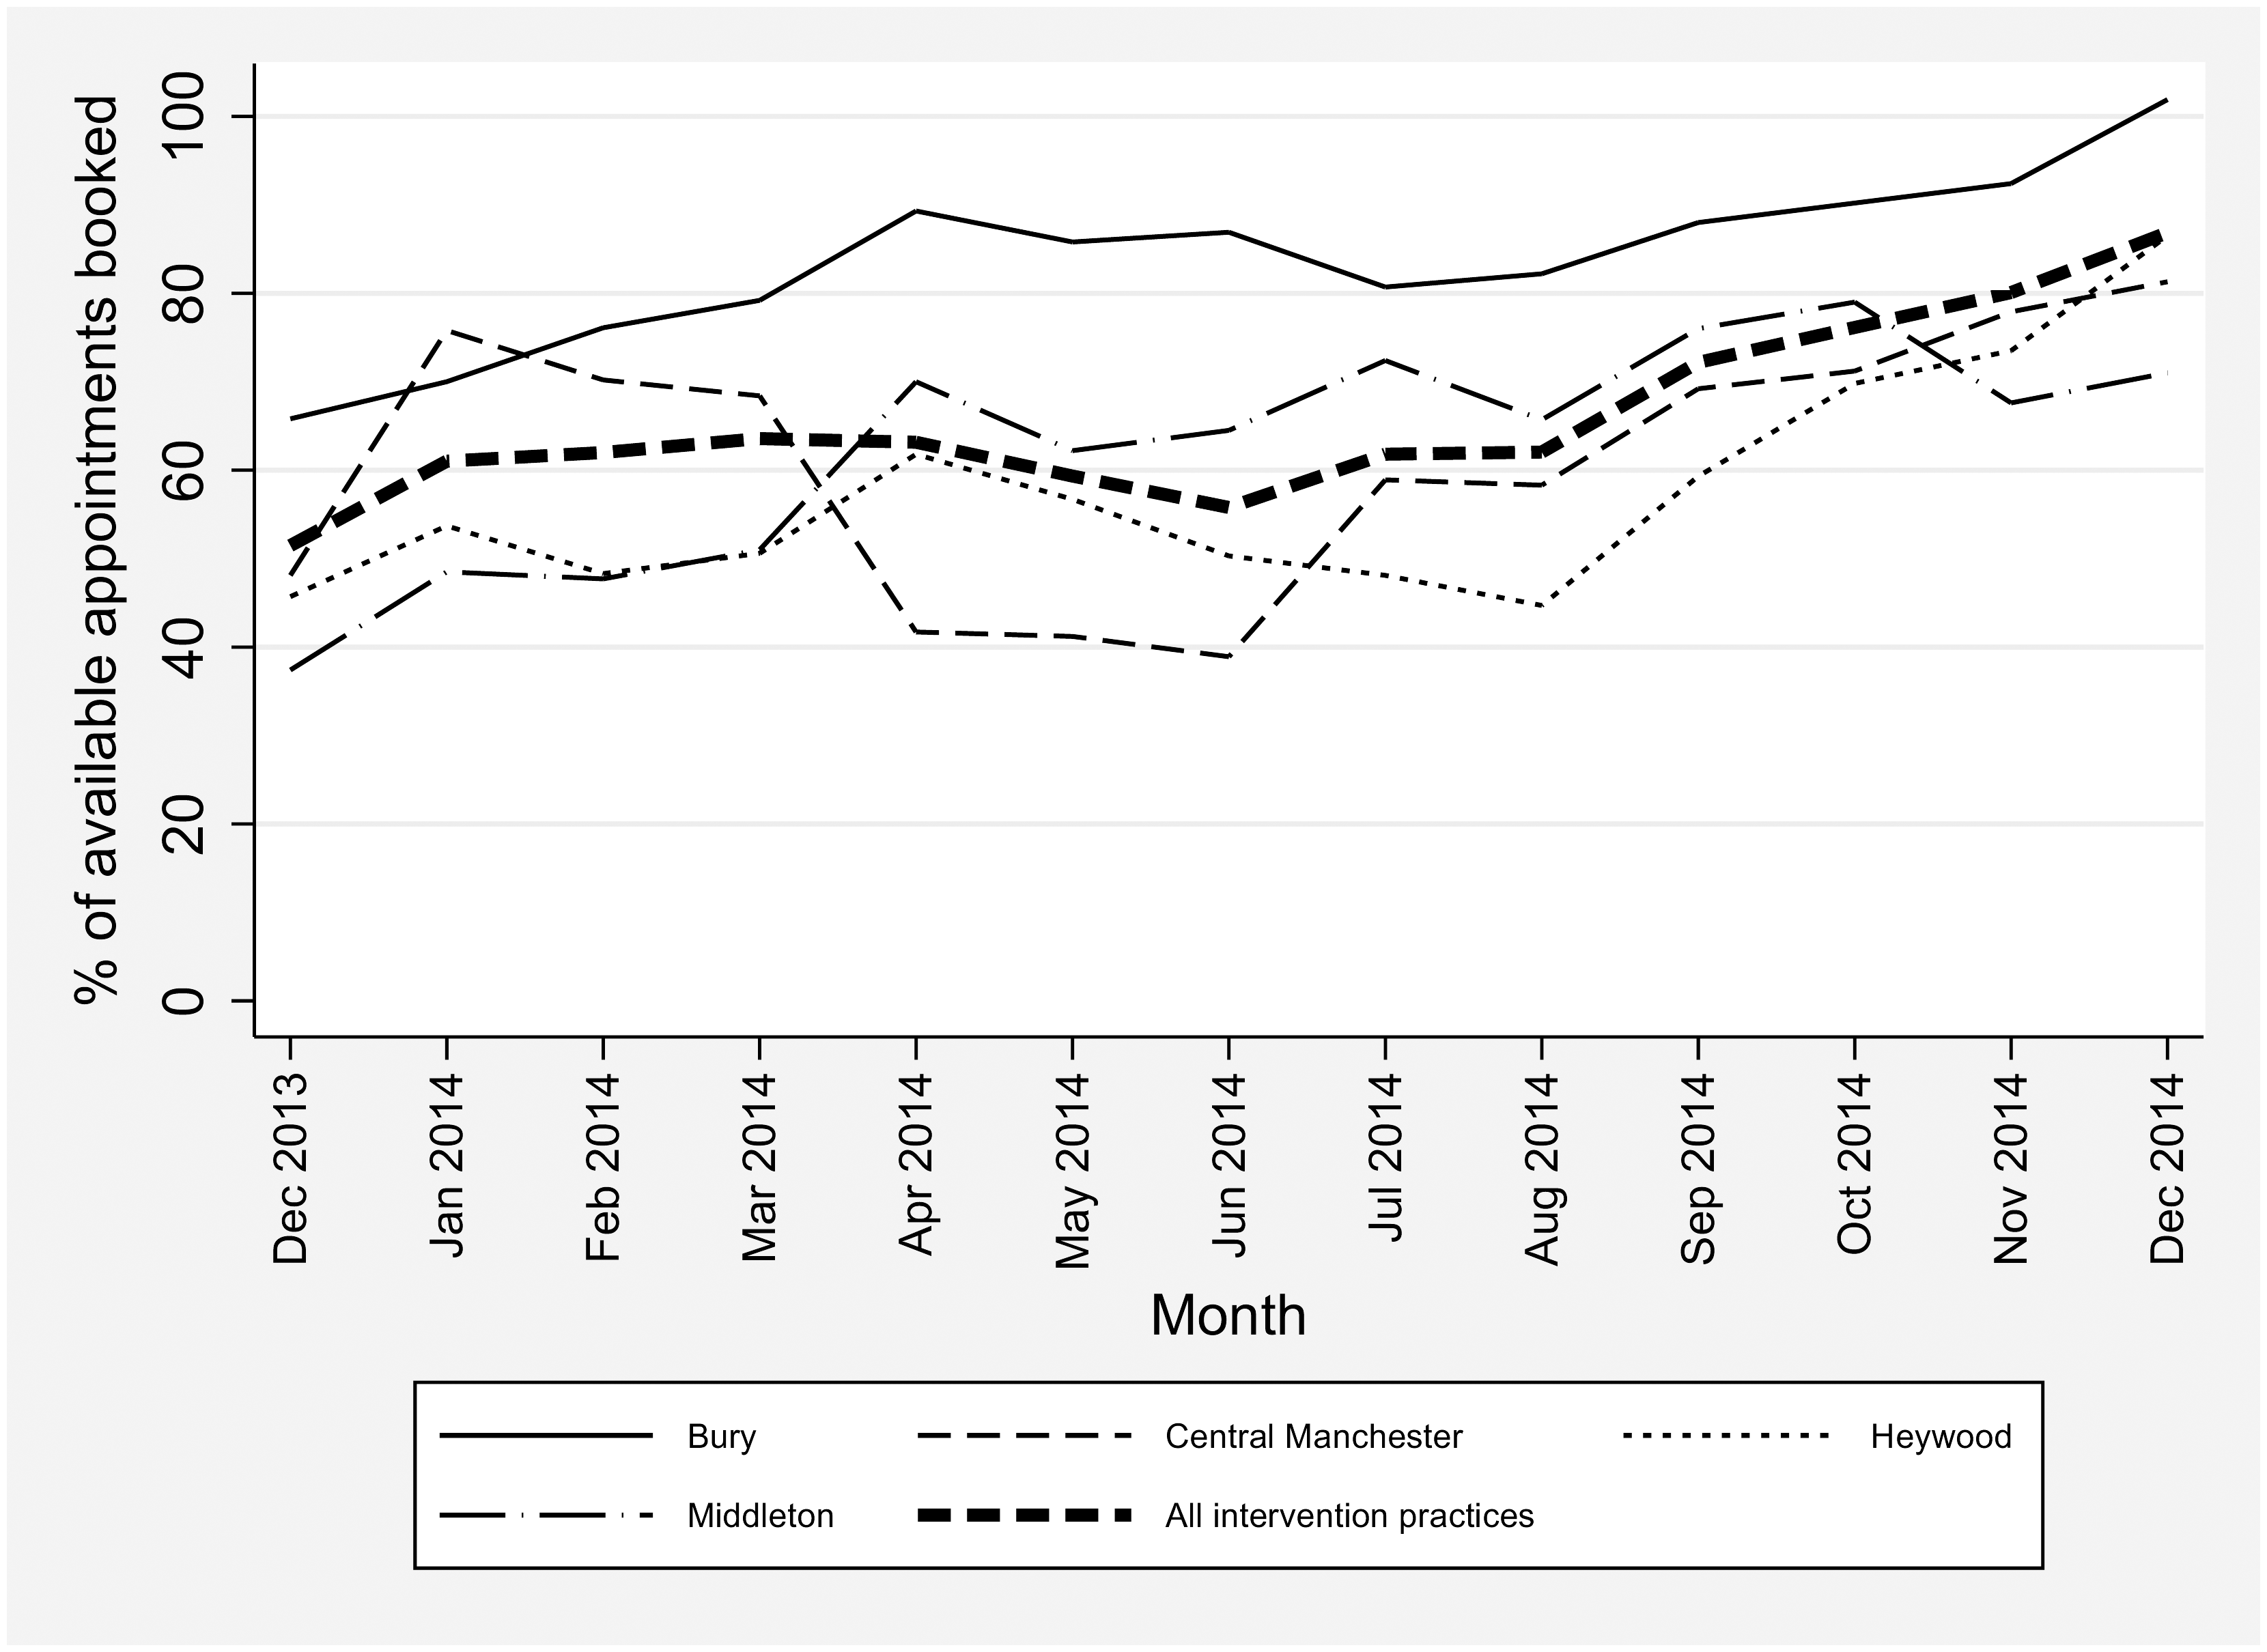 Percentage of additional appointments booked in intervention practices, by Clinical Commissioning Group.